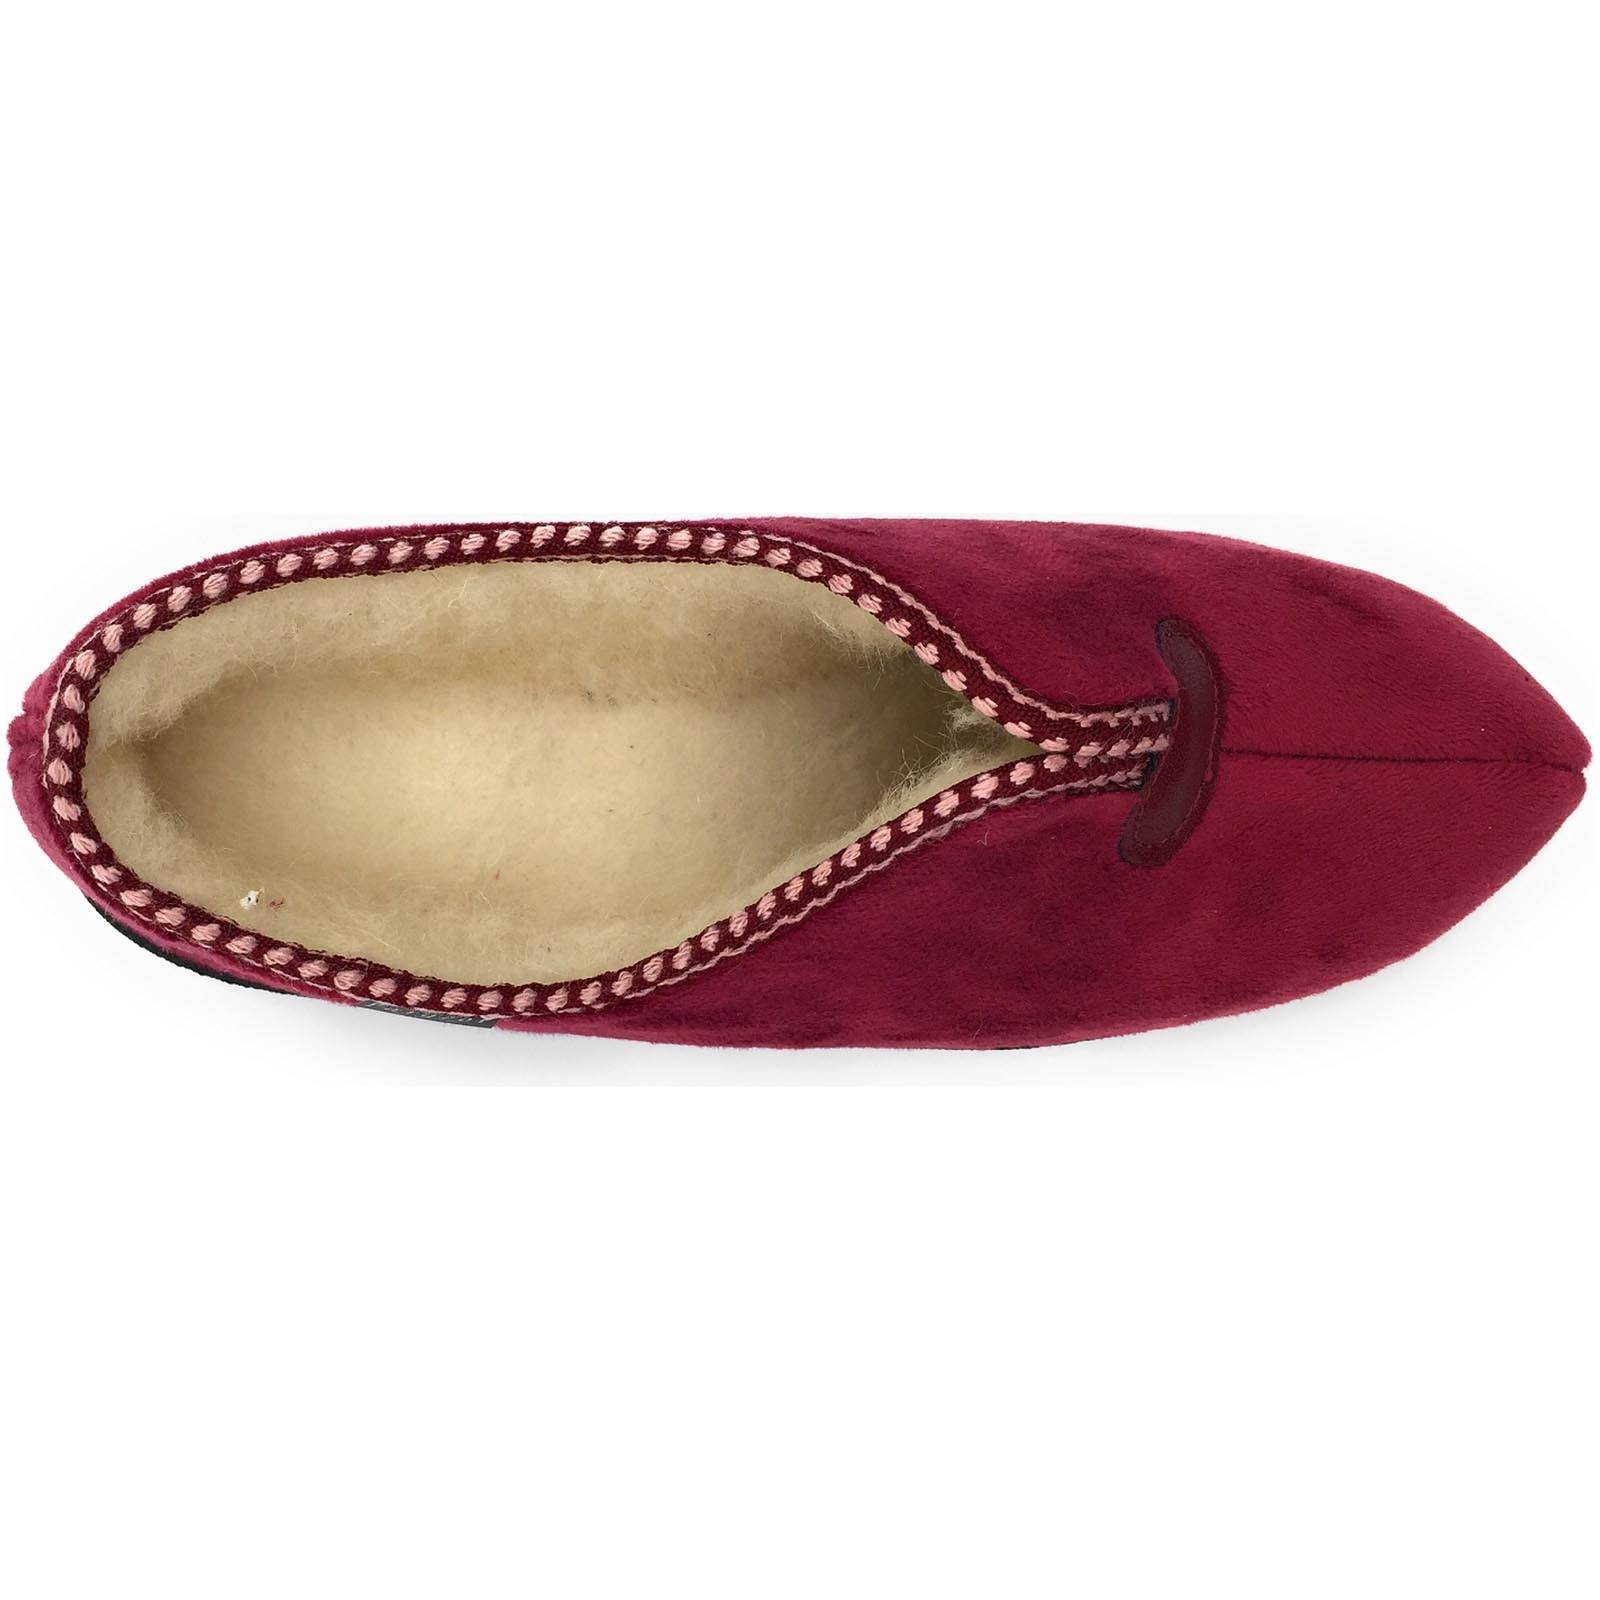 Fargeot chaussons obelie rouge1009002_5